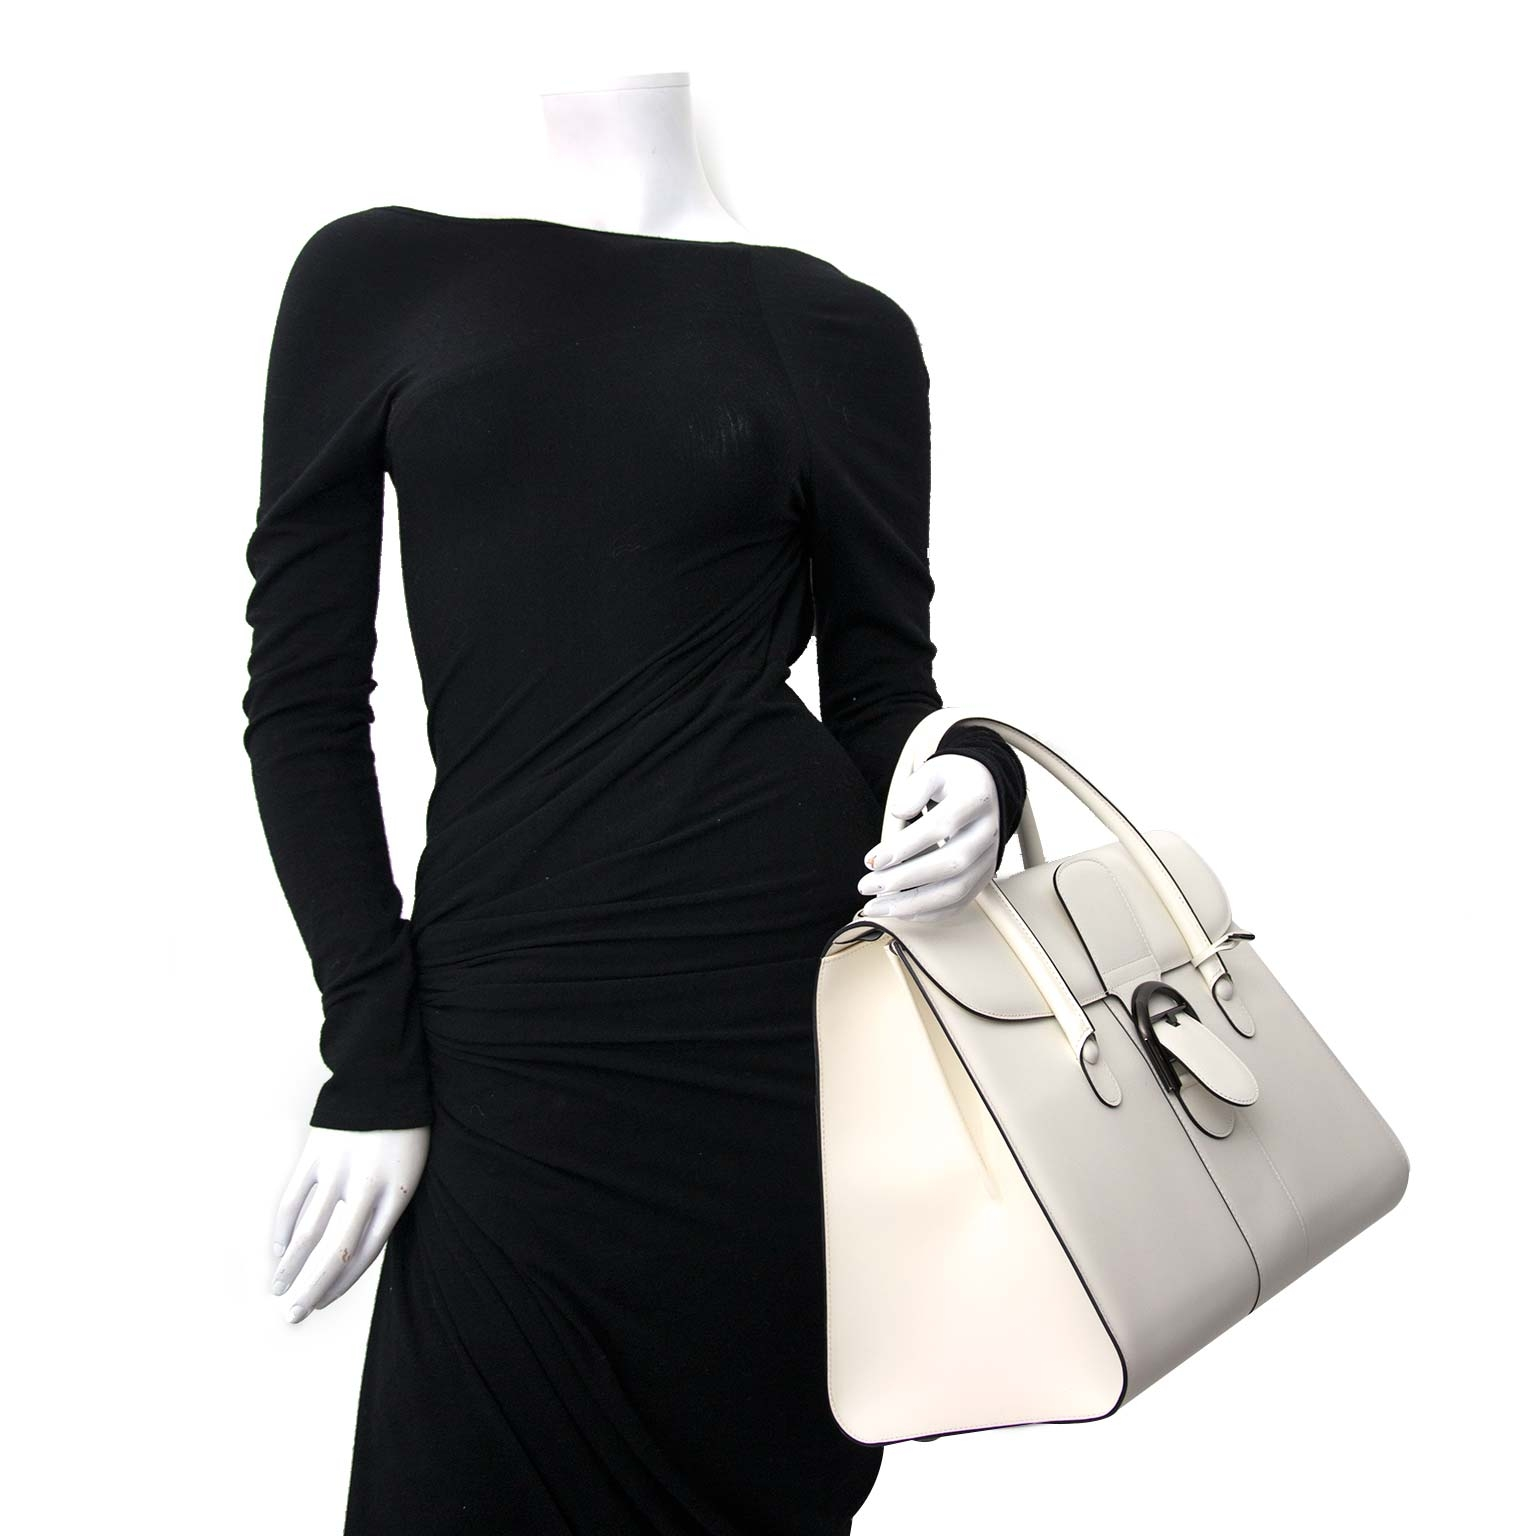 Delvaux White Brillant Double Poignée Bag Buy authentic designer Delvaux secondhand bags at Labellov at the best price. Safe and secure shopping. Koop tweedehands authentieke Delvaux tassen bij designer webwinkel labellov.